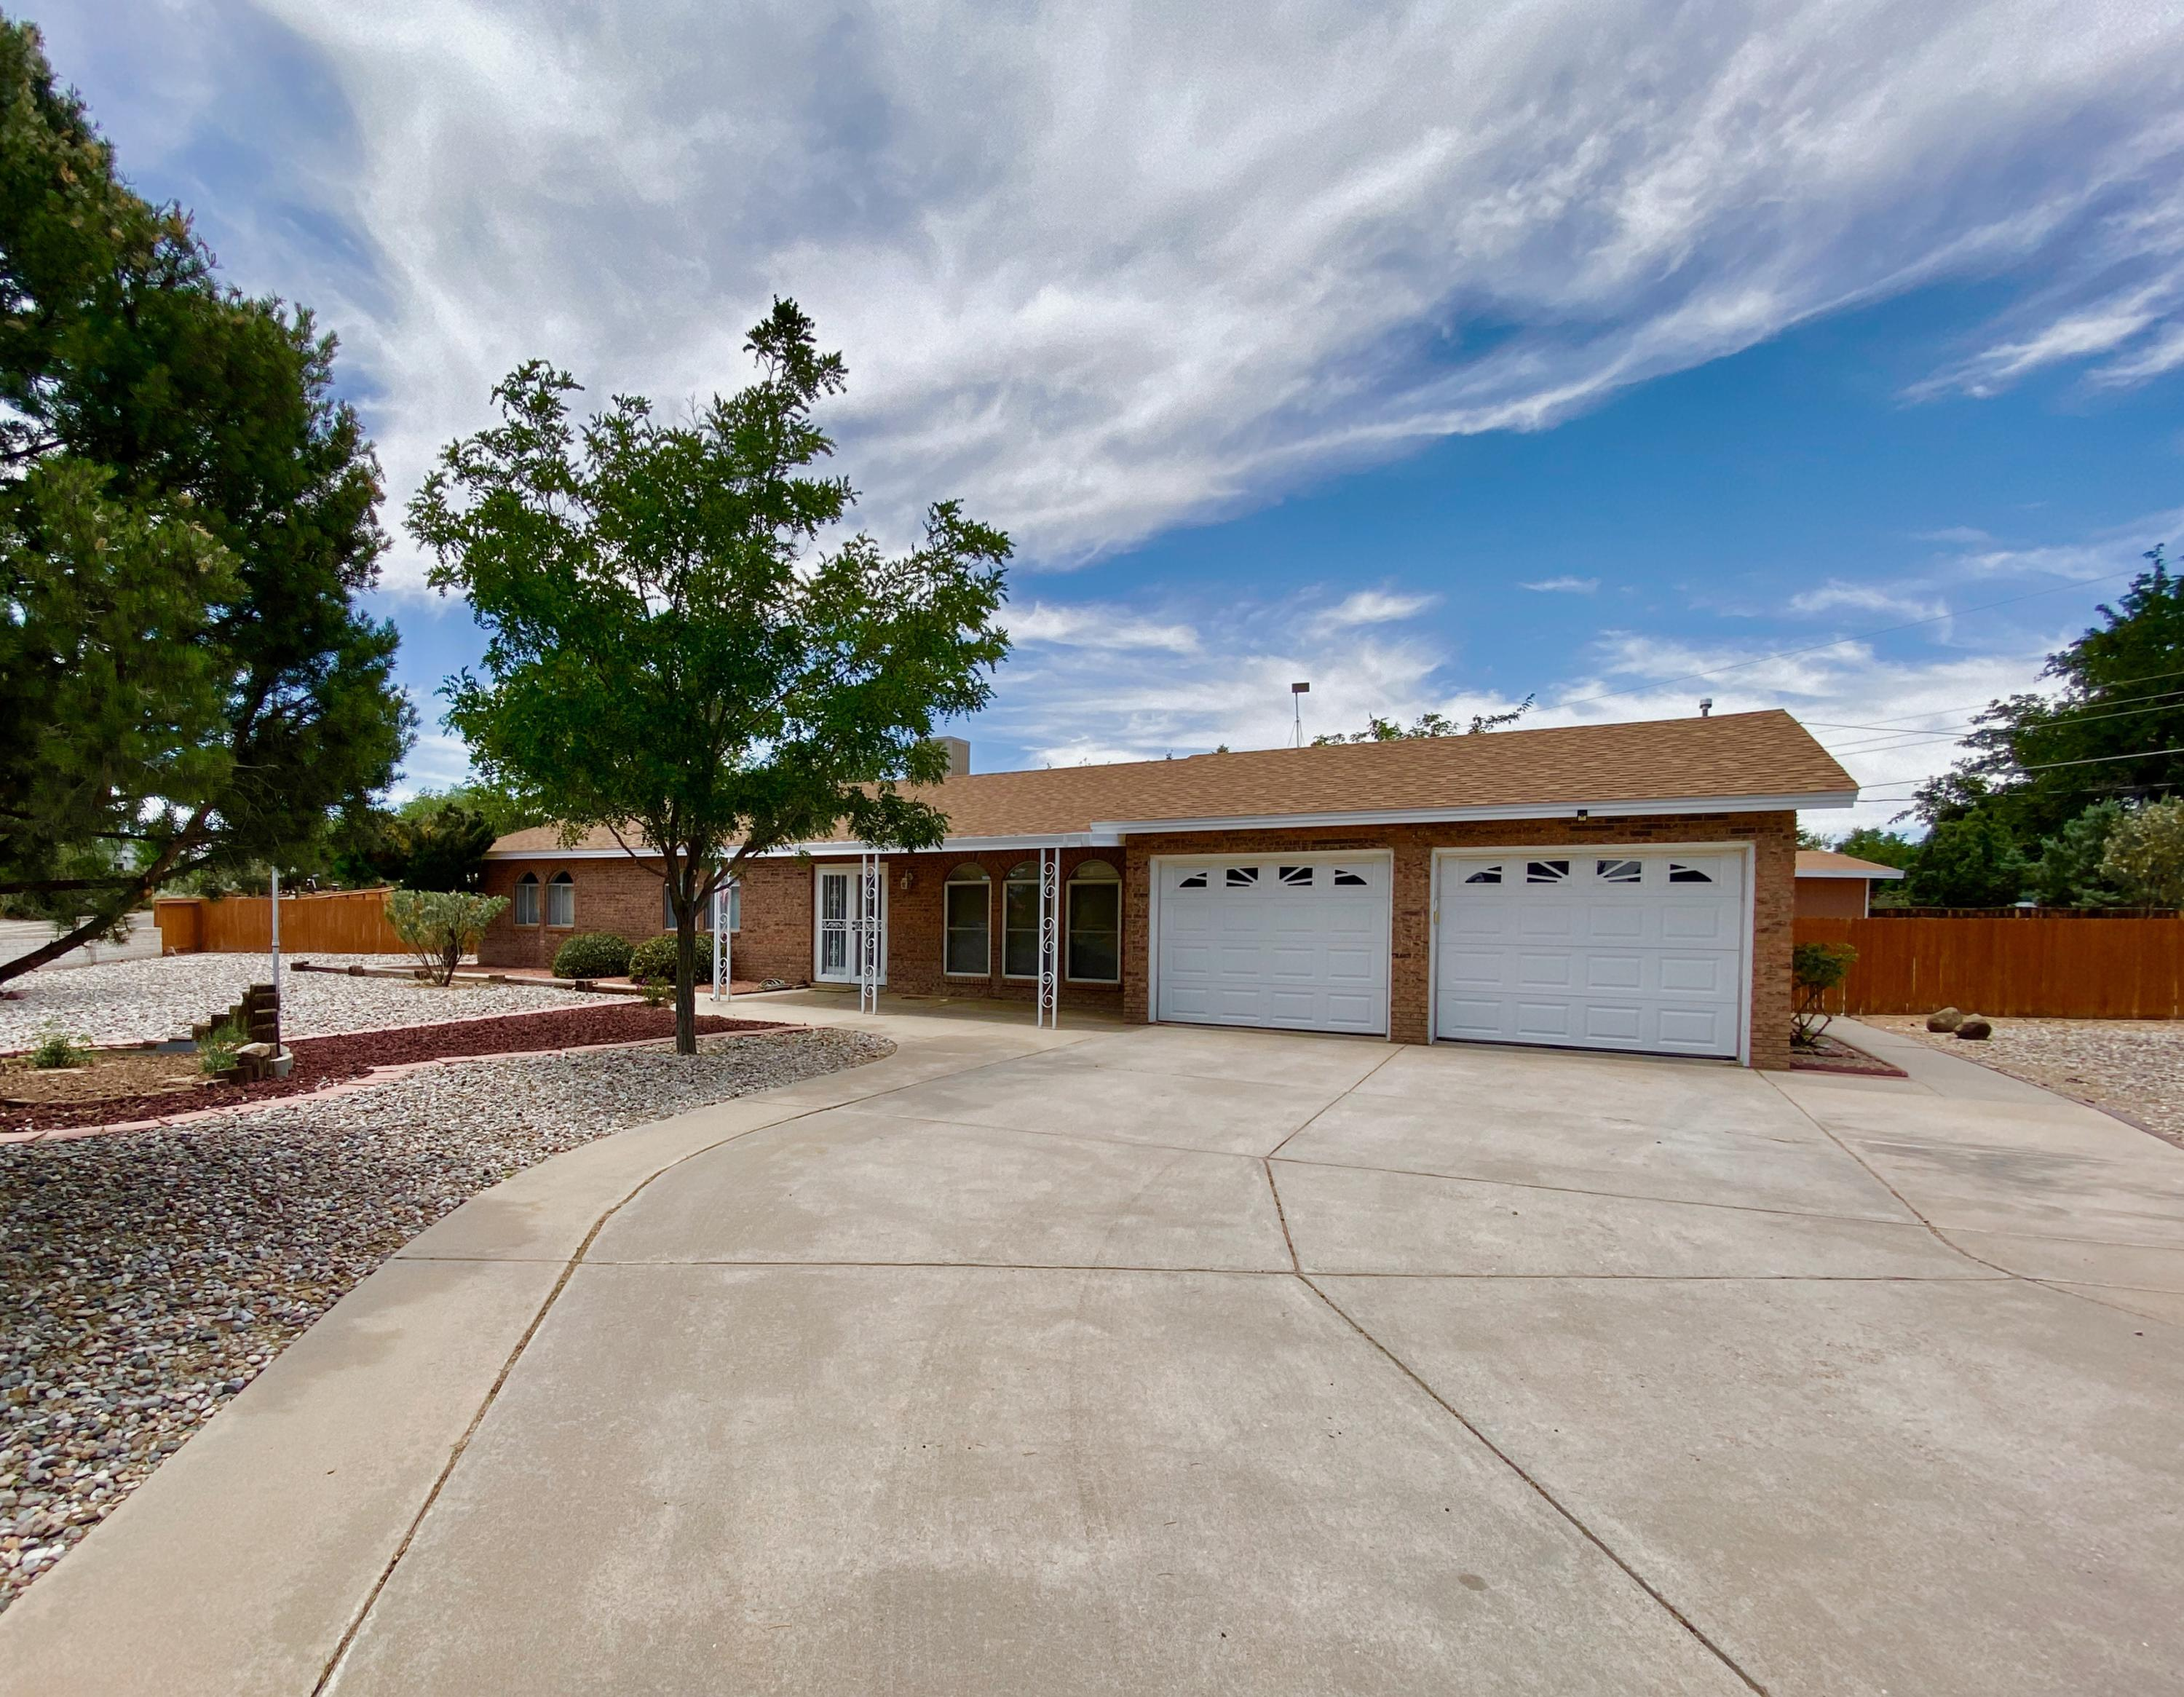 Space to Dream & Room to Grow! If you are in search of a one story ranch style brick home in the Heart of Rio Rancho, on expansive corner lot (.62), then this property is a ''must see''.Glass French doors welcome you into this light filled home with large living spaces. Bright living room & formal dining room, wonderful for gathering friends & loved ones. The country kitchen offers ample storage & opens to one of two large covered patios. And with sizable backyard access you will have room to store your RV, boat or even add a casita; PLUS the two outbuildings provide you all the room you need to indulge your hobbies & passions (one is two levels w/ wtr & electric). The oversized heated garage boasts 2 insulated garage doors w/ openers & utility sink. Newer Wtr Htr. Frig/Washer/Dryer Stay!